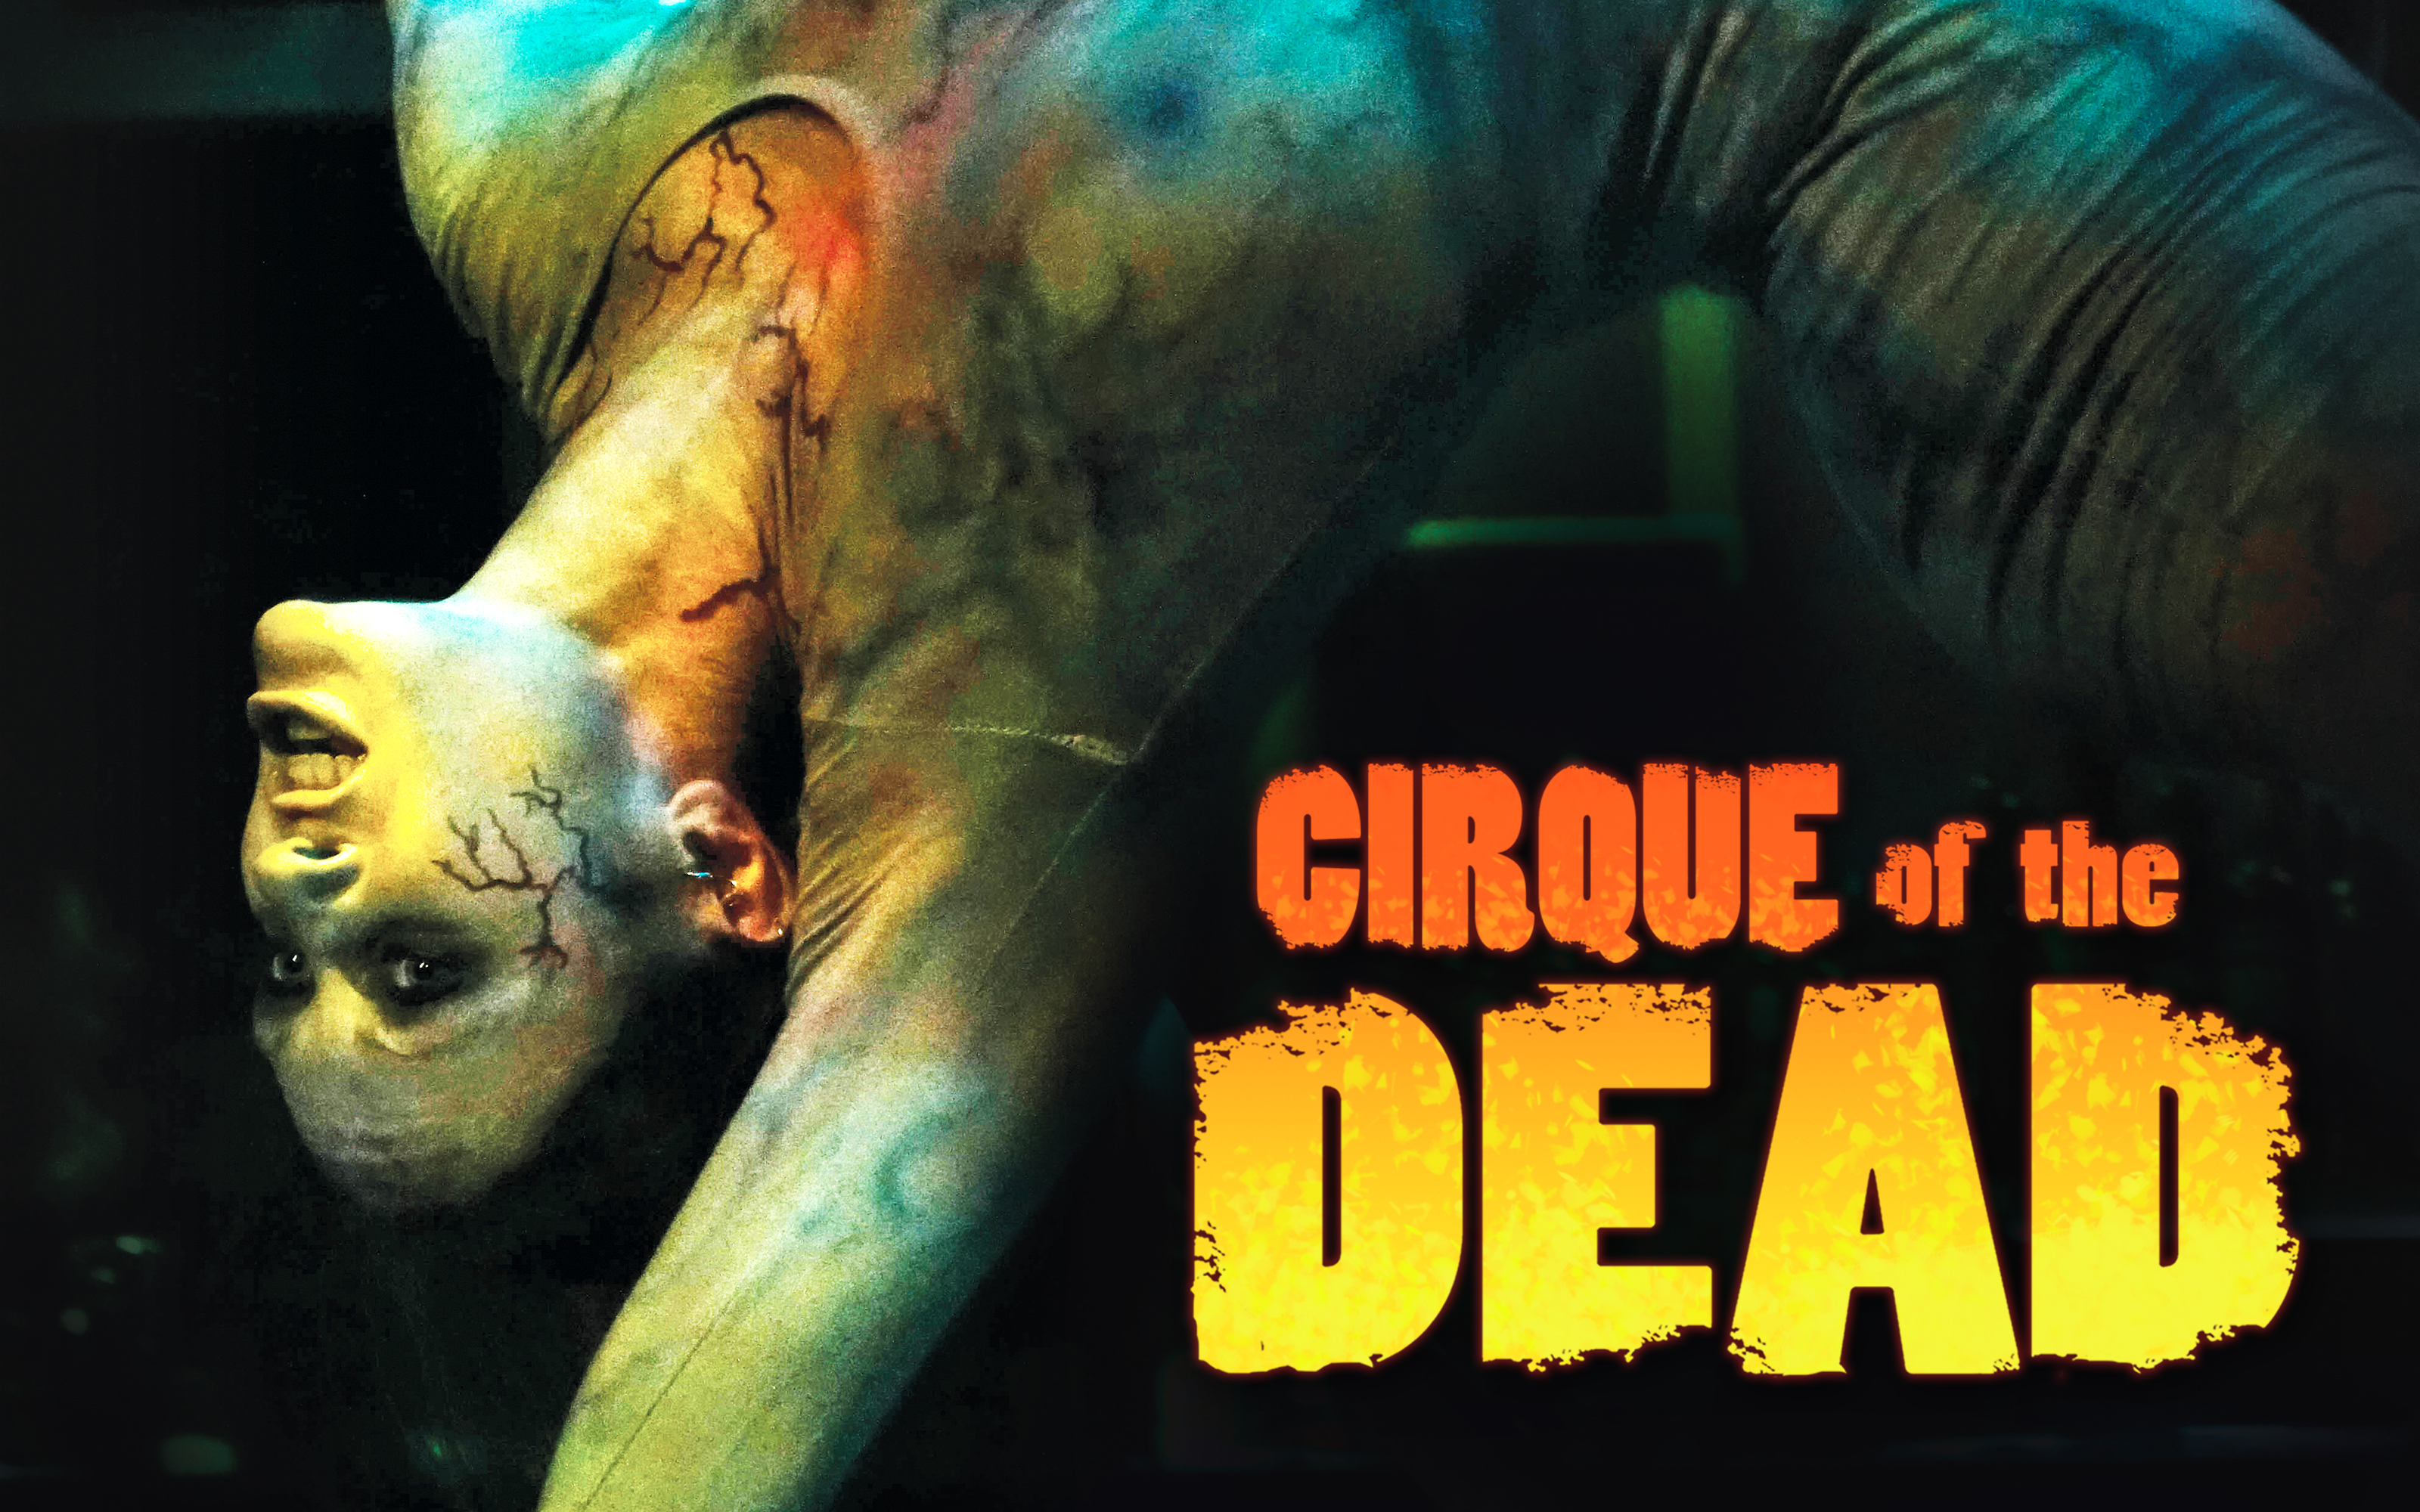 Cirque of the Dead